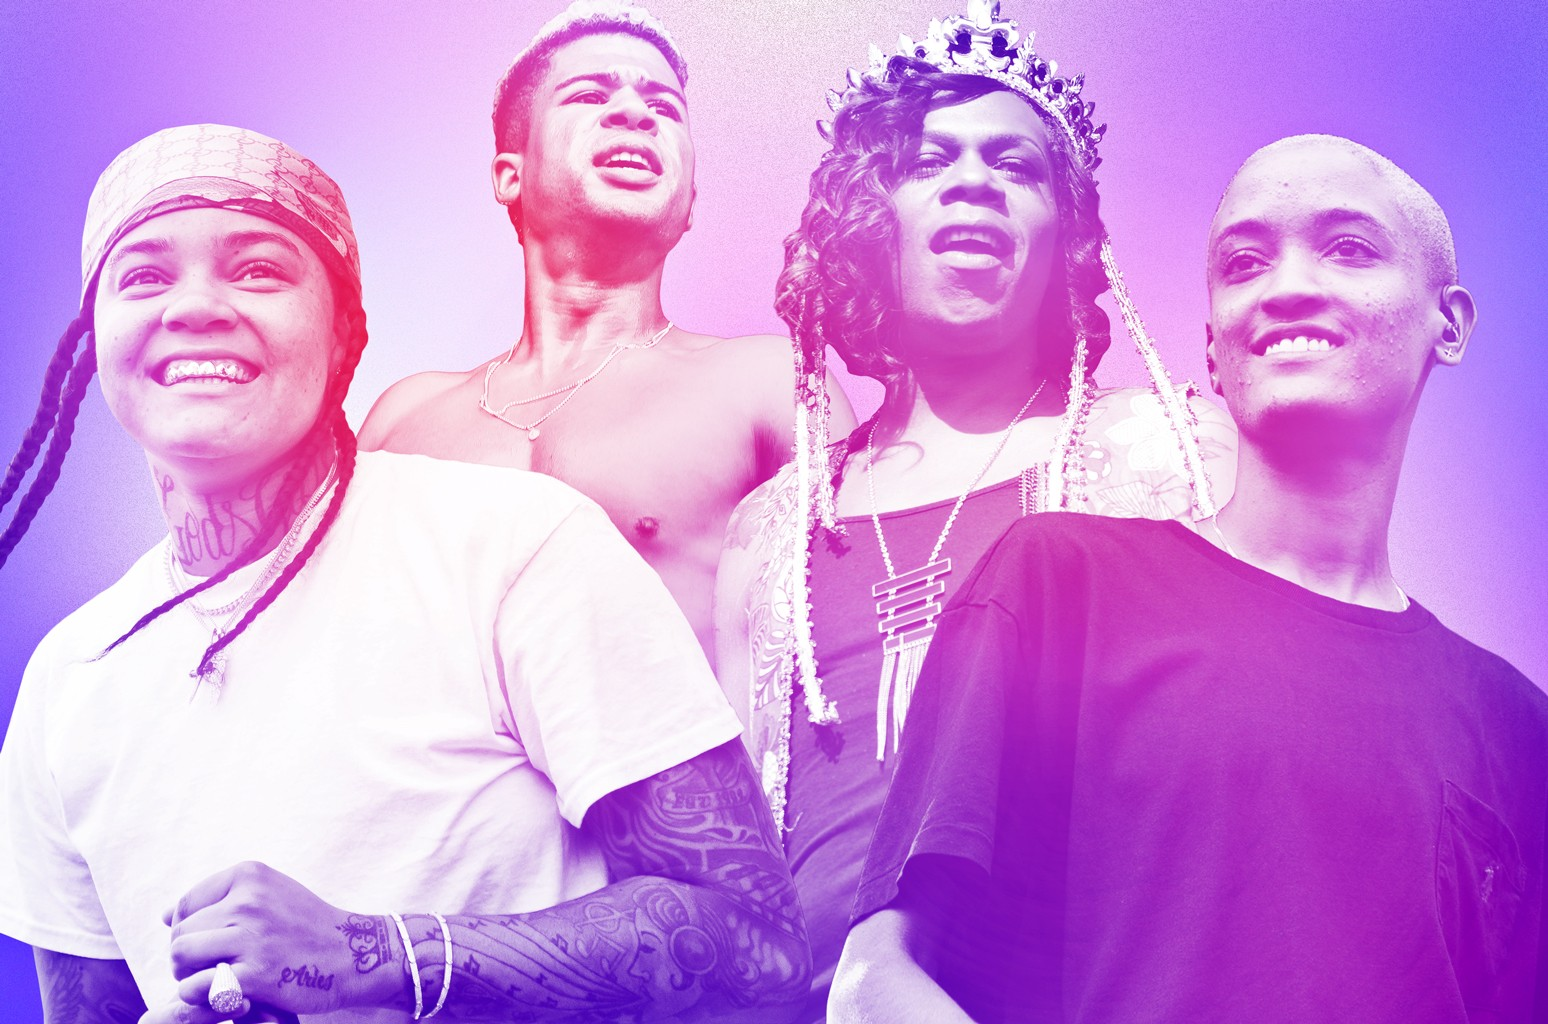 (L-R) Young M.A, iLoveMakonnen, Big Freedia & Syd (The Internet)